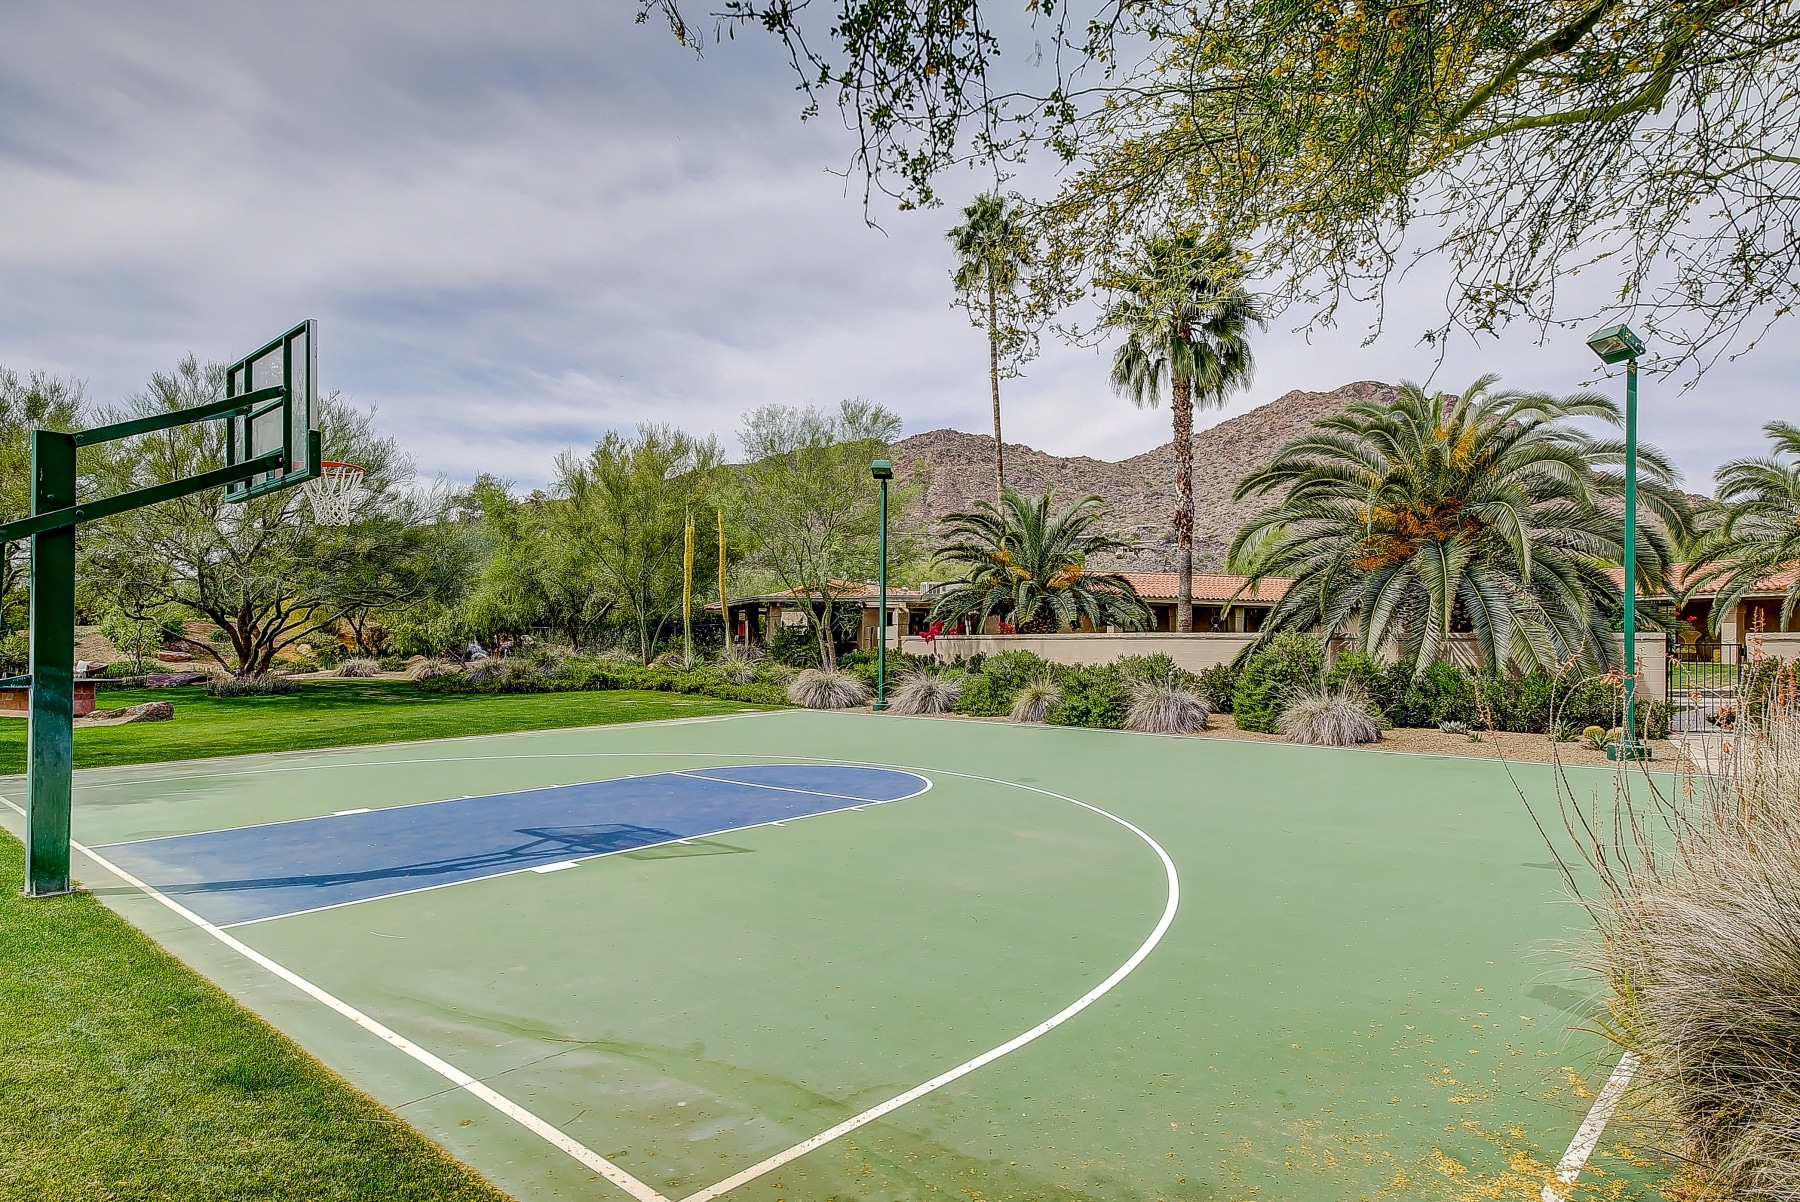 paradise valley basketball court